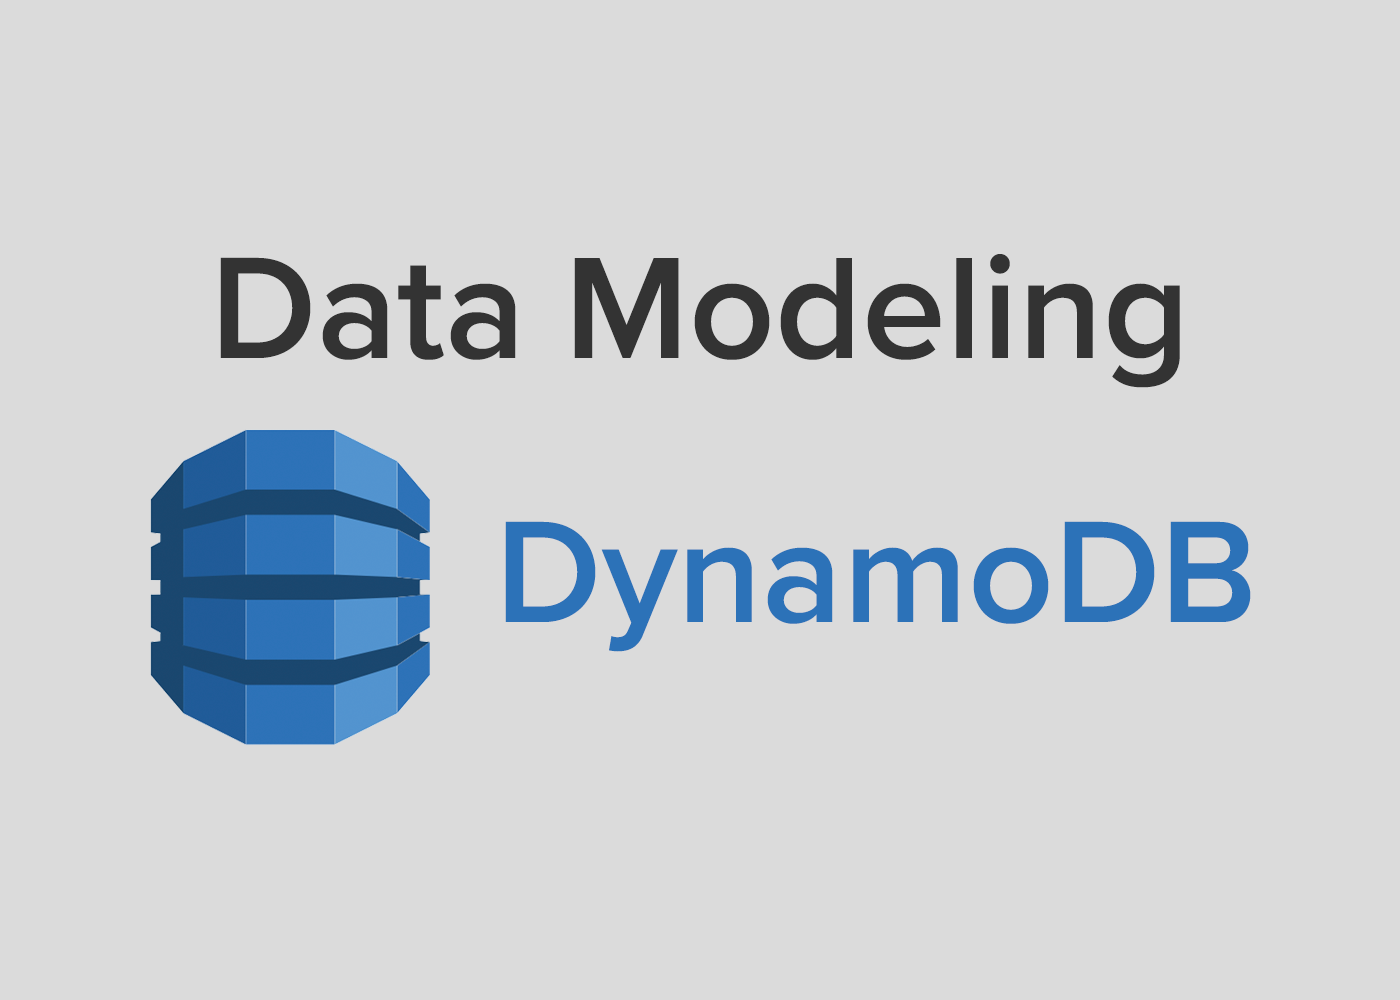 Data Modeling in AWS DynamoDB - The Startup - Medium